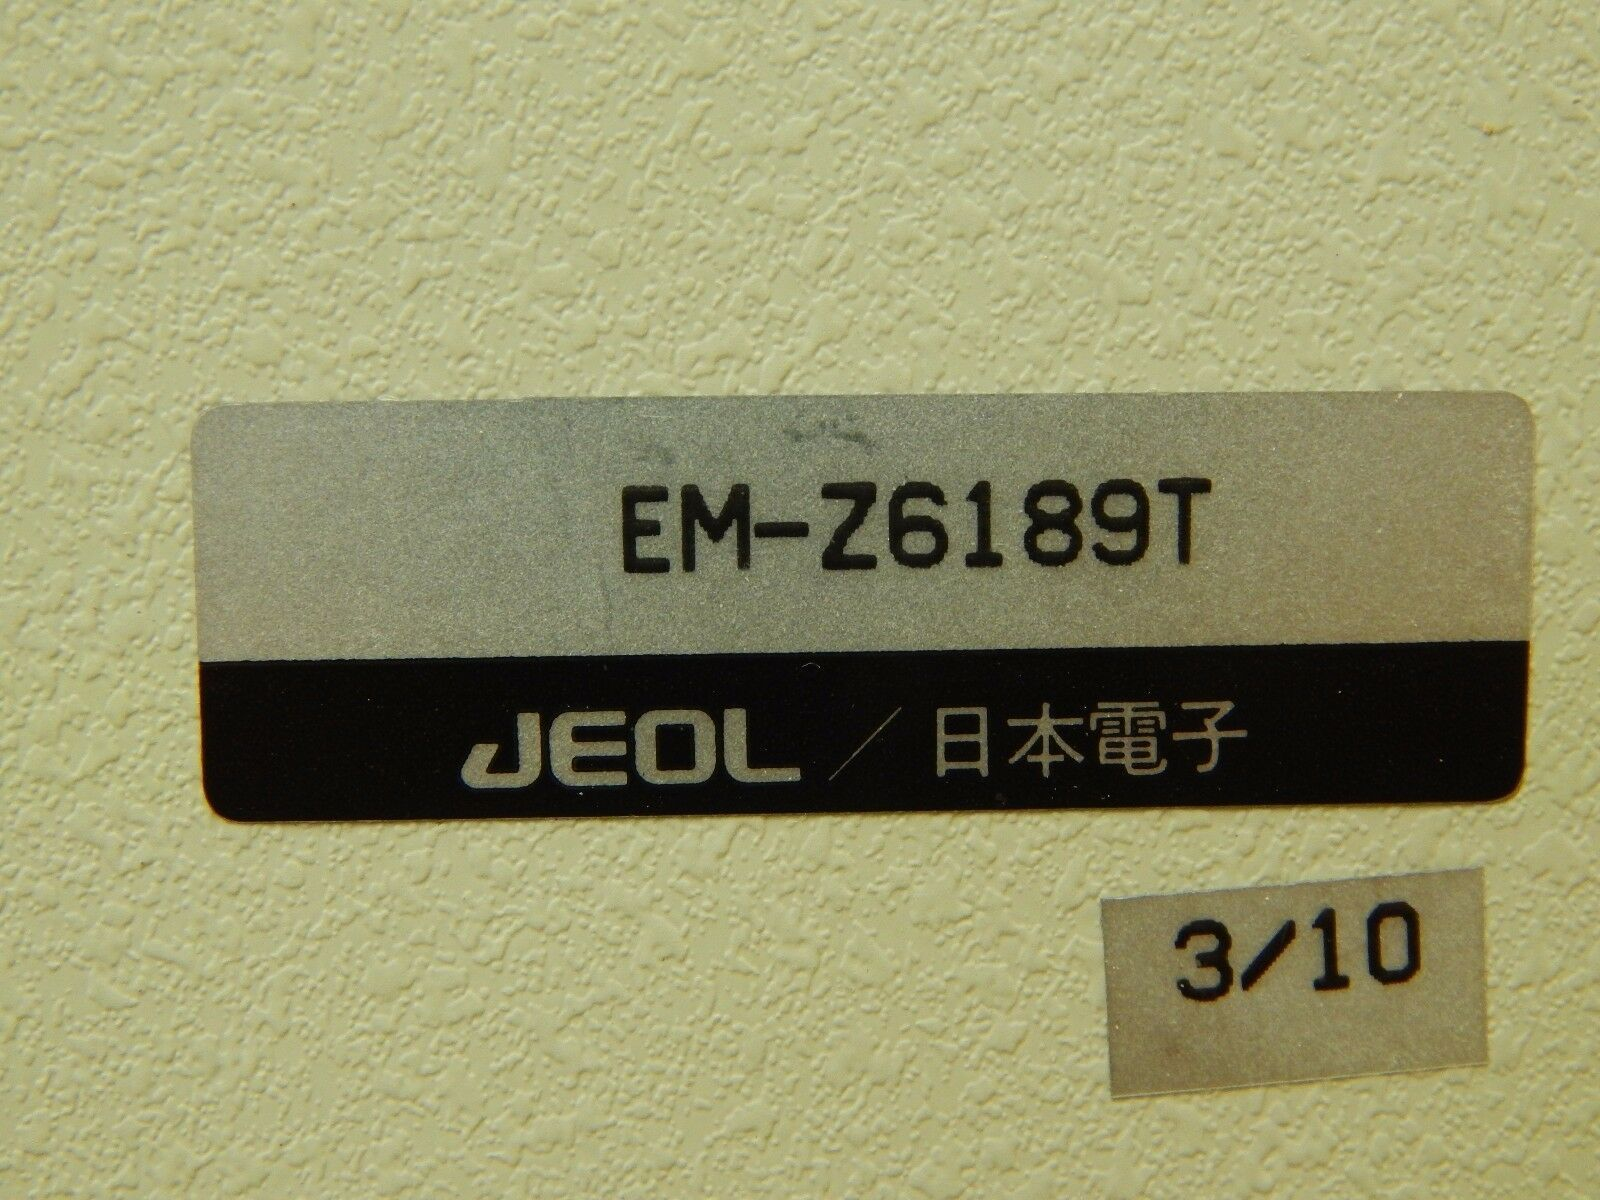 JEOL EM-Z6189T Power Supply PCB Module JEM-2010F TEM MP003922-00 Used Working